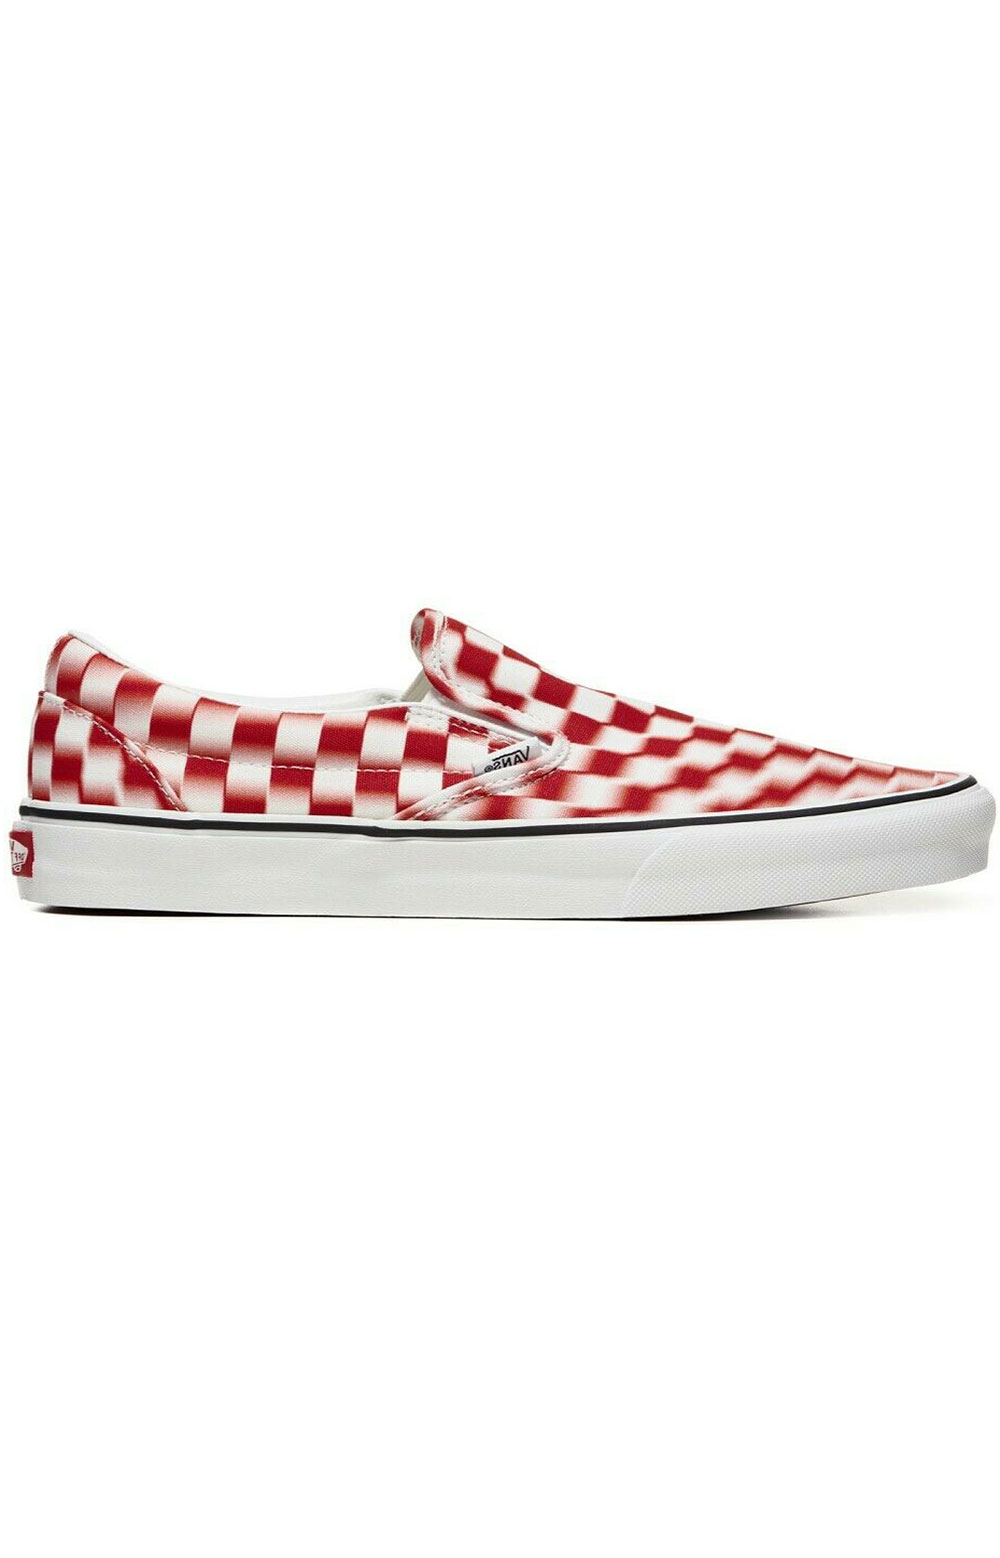 (U3817Z) Blur Check Classic Slip-On Shoe - Ture White/Red